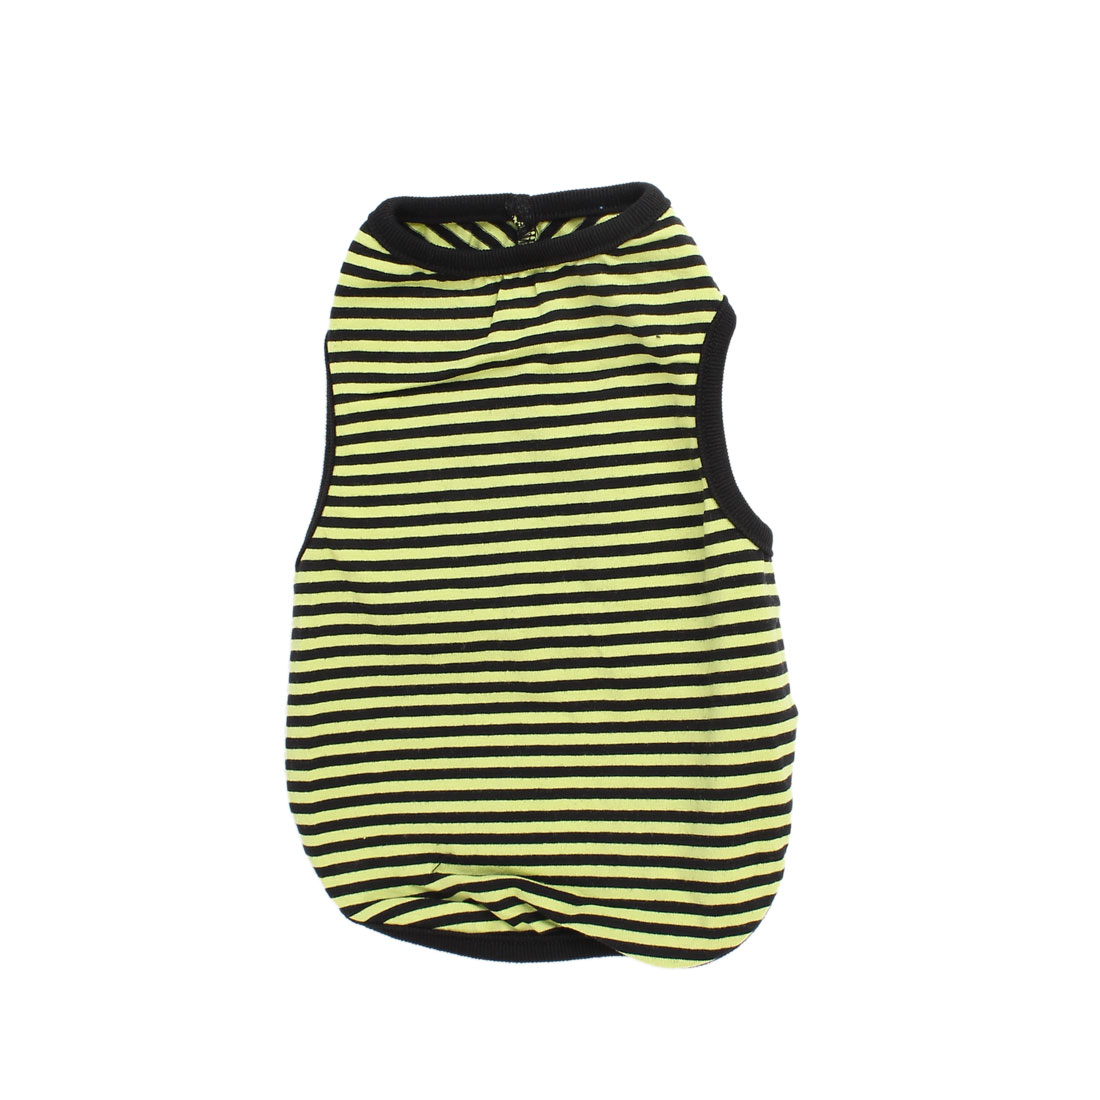 Pet Dog Yorkie Black Yellow Stripe Pattern Sleeveless Stretchy Tank Top Tee Shirt Vest Size M